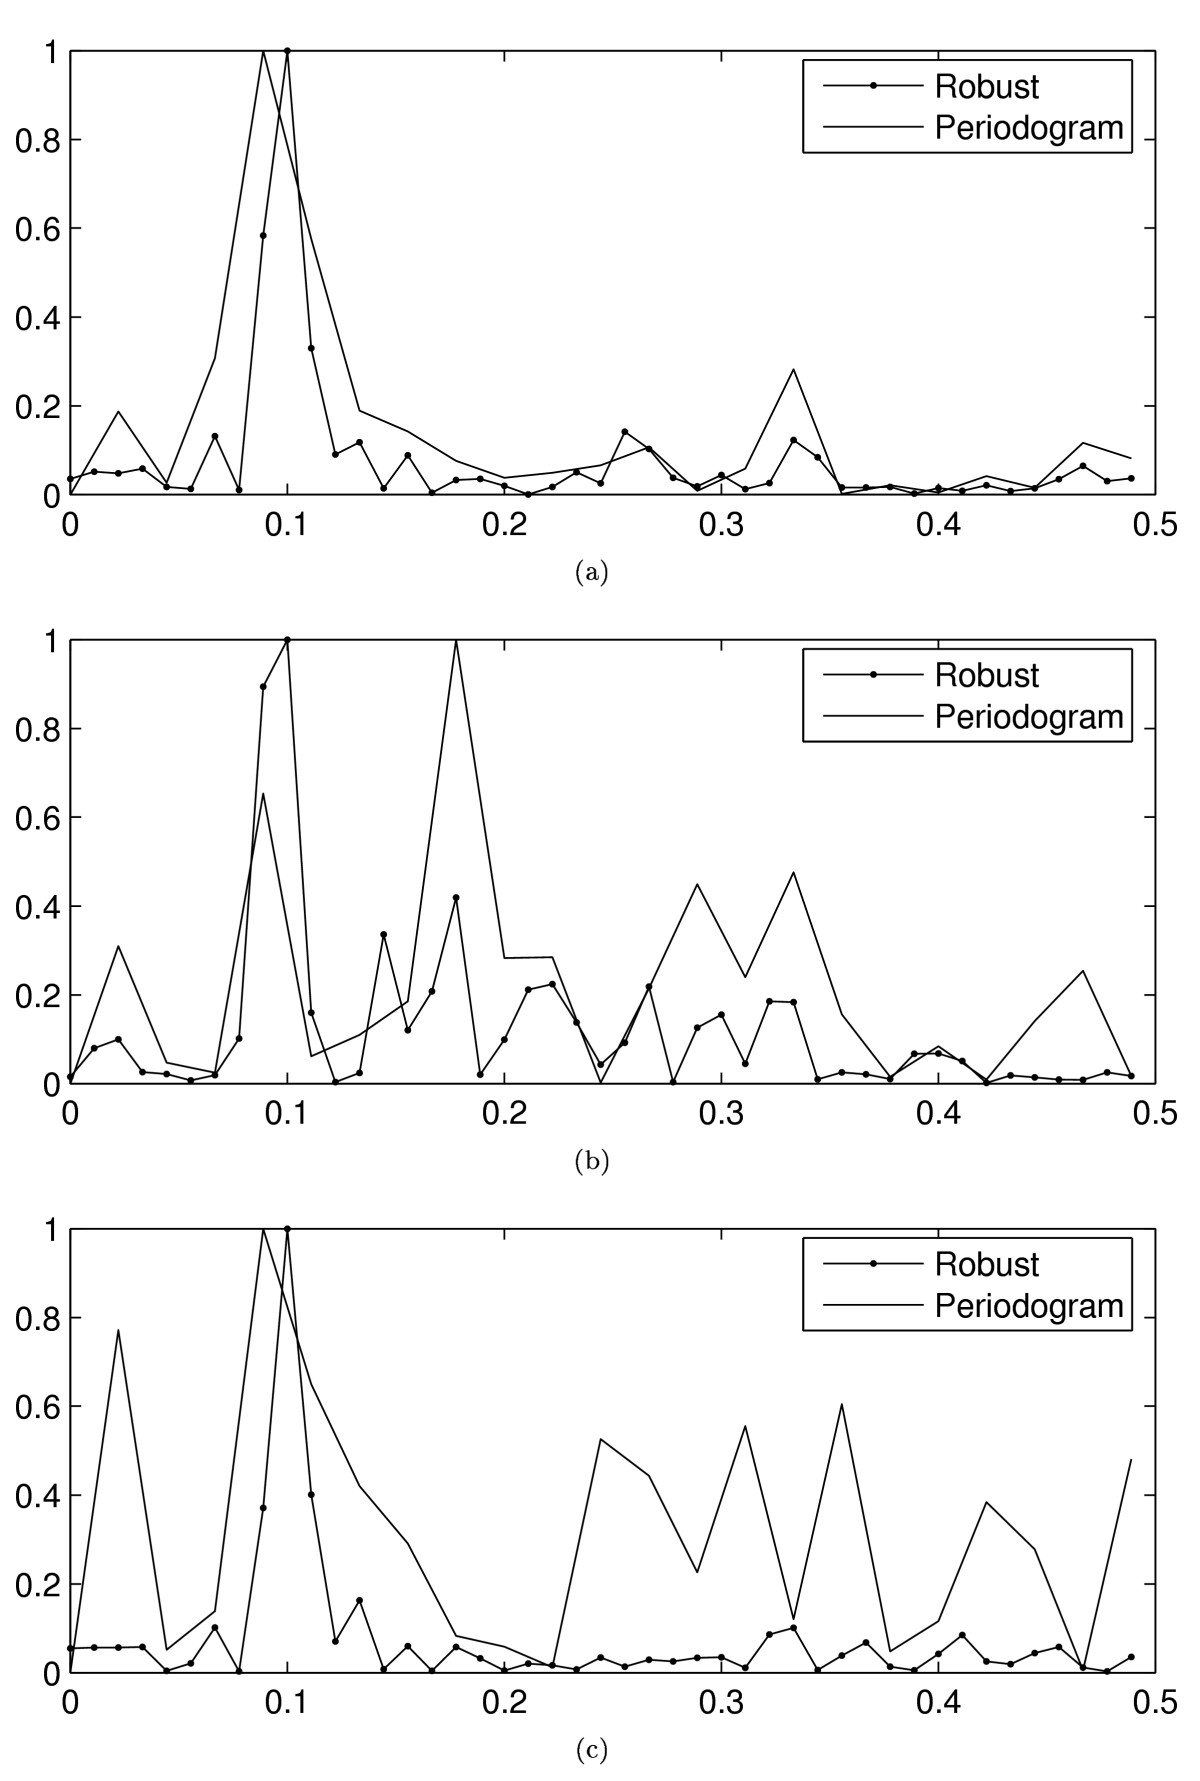 http://static-content.springer.com/image/art%3A10.1186%2F1471-2105-6-117/MediaObjects/12859_2005_Article_442_Fig2_HTML.jpg